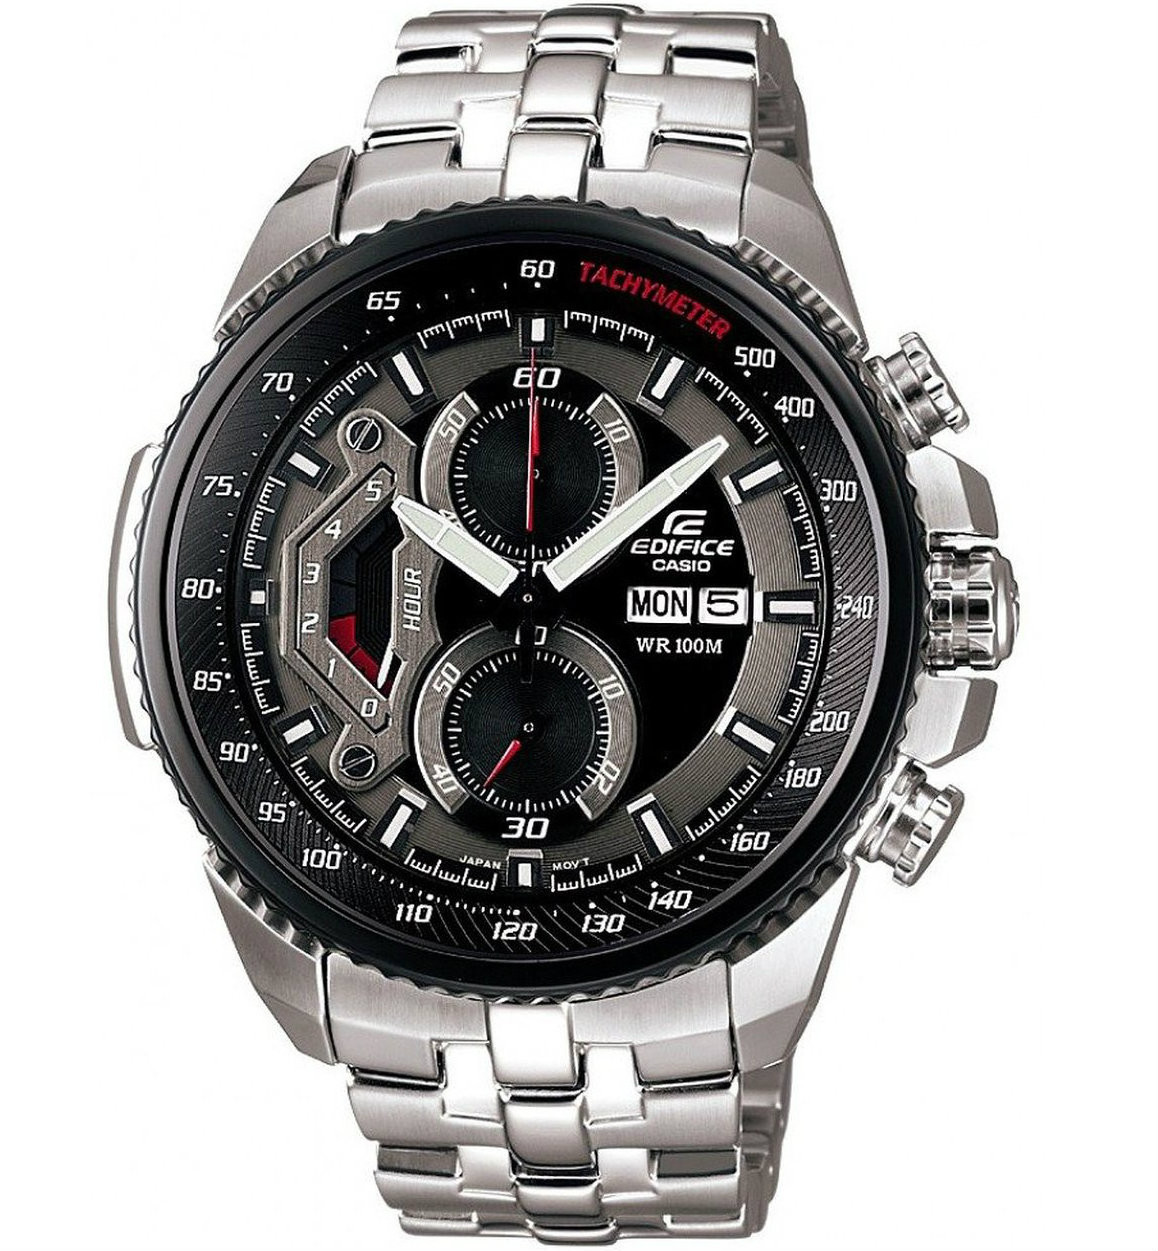 Watch Review - Casio Edifice Mens Black Dial Chronograph Watch EF-558D-1AVEF